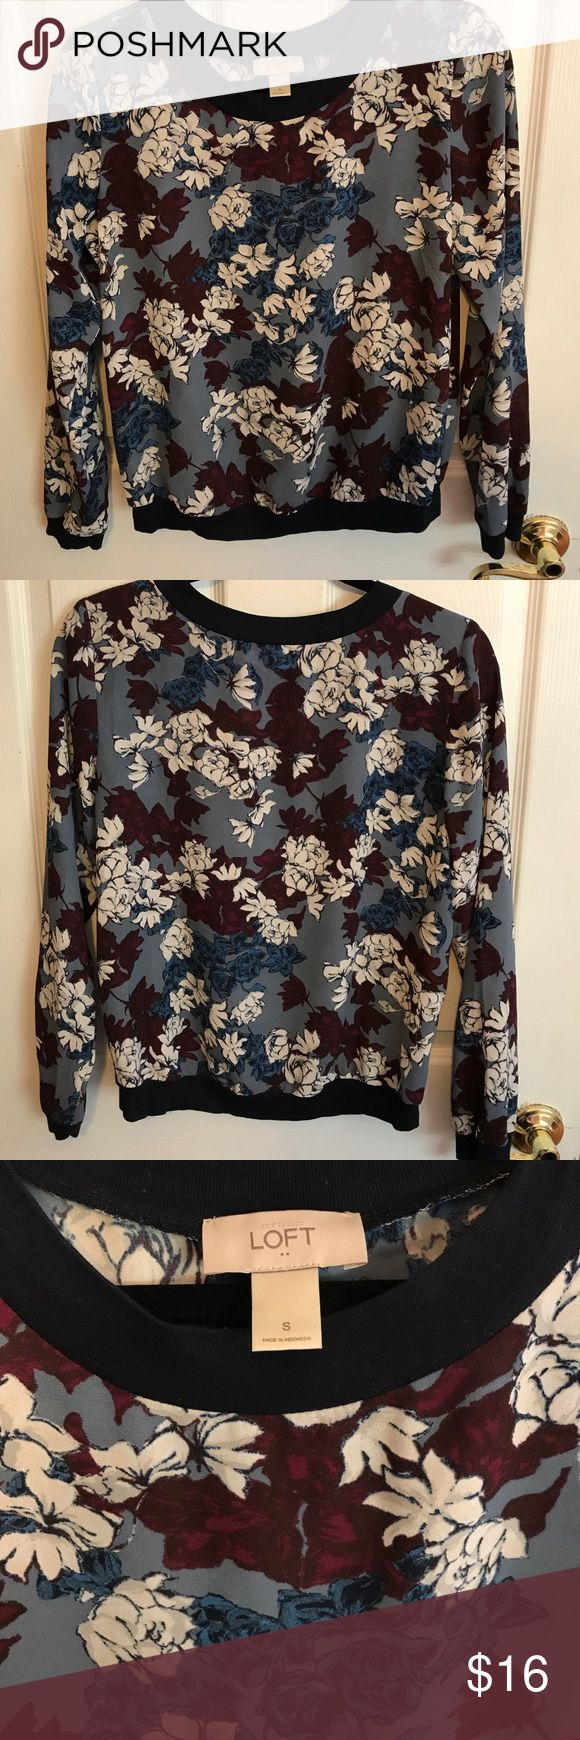 Ann Taylor Loft Outlet Floral Top Ann Taylor Loft Outlet Floral Top. Only worn twice! In perfect condition. Semi sheer material, runs a little big (can easily fit a medium). Sweater like look, perfect for fall! LOFT Tops Blouses